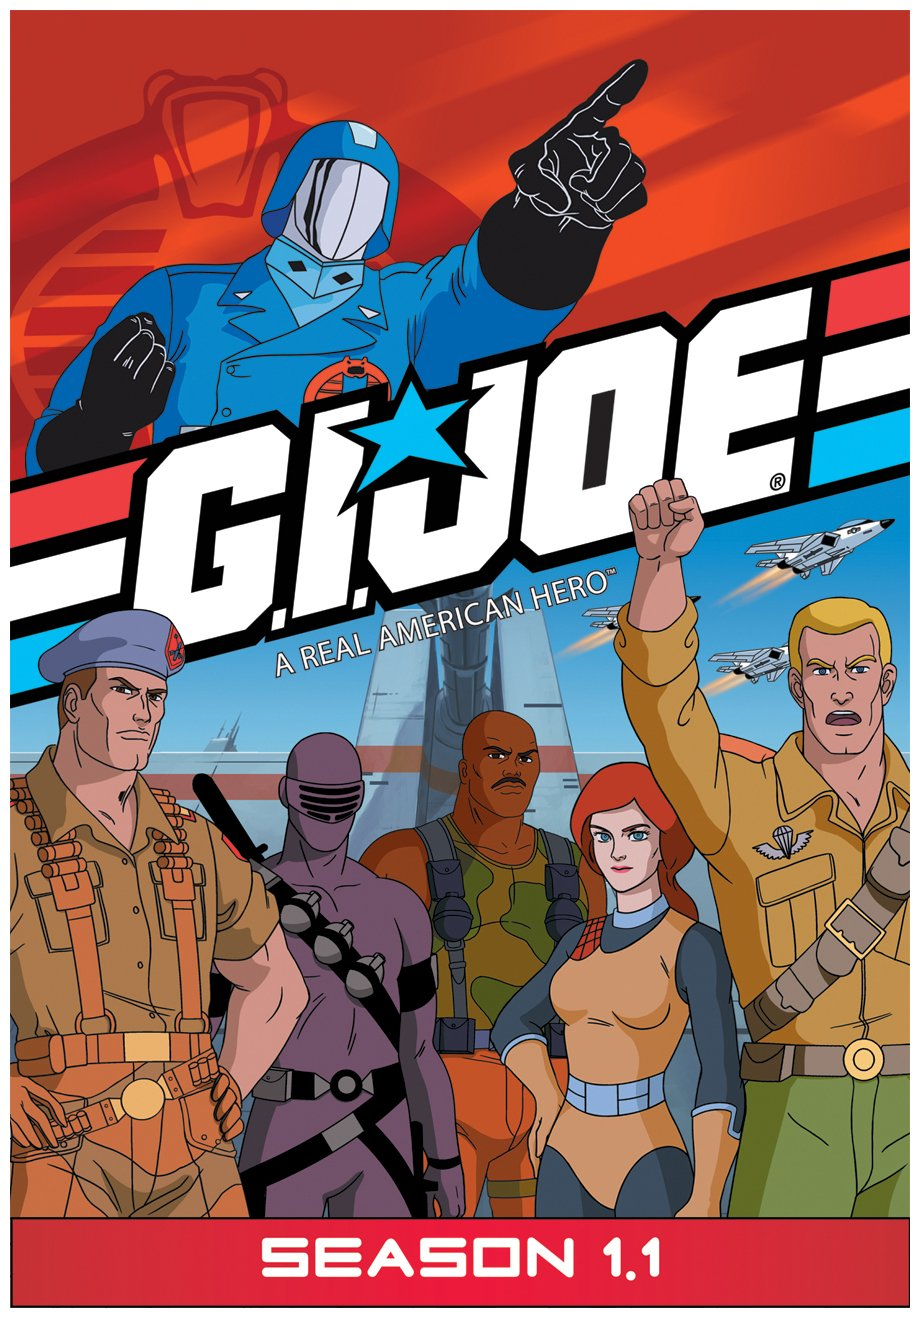 an introduction to the real american hero A real american hero (1980s) by eugene ipavec , 14 april 2005 i vaguely recall seeing a white flag with a star, a streak following after it, and the words gijoe, in red and blue.